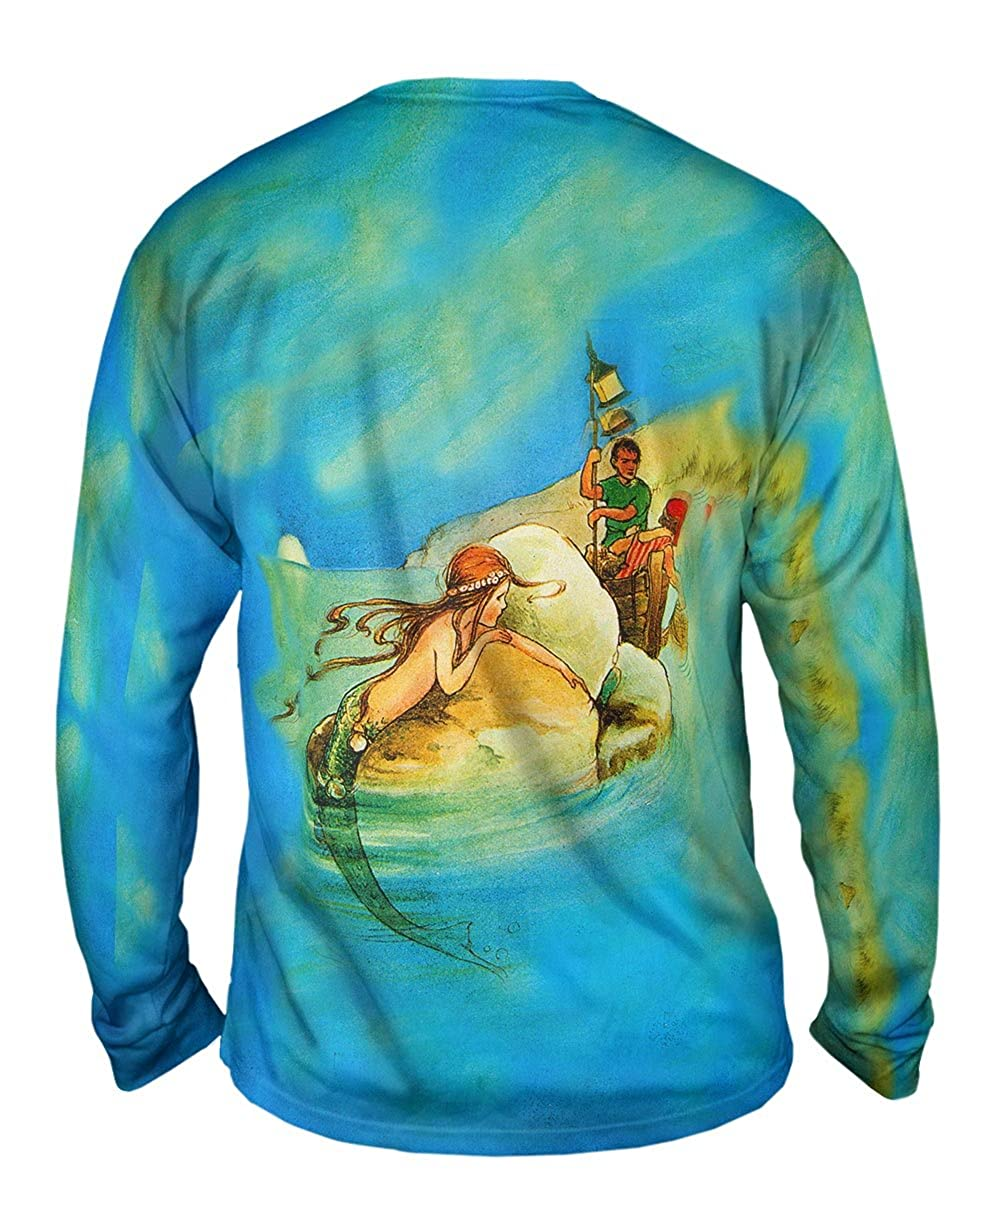 Yizzam Mermaid On Ro Mabel Lucie Artwell Mens Long Sleeve 1806